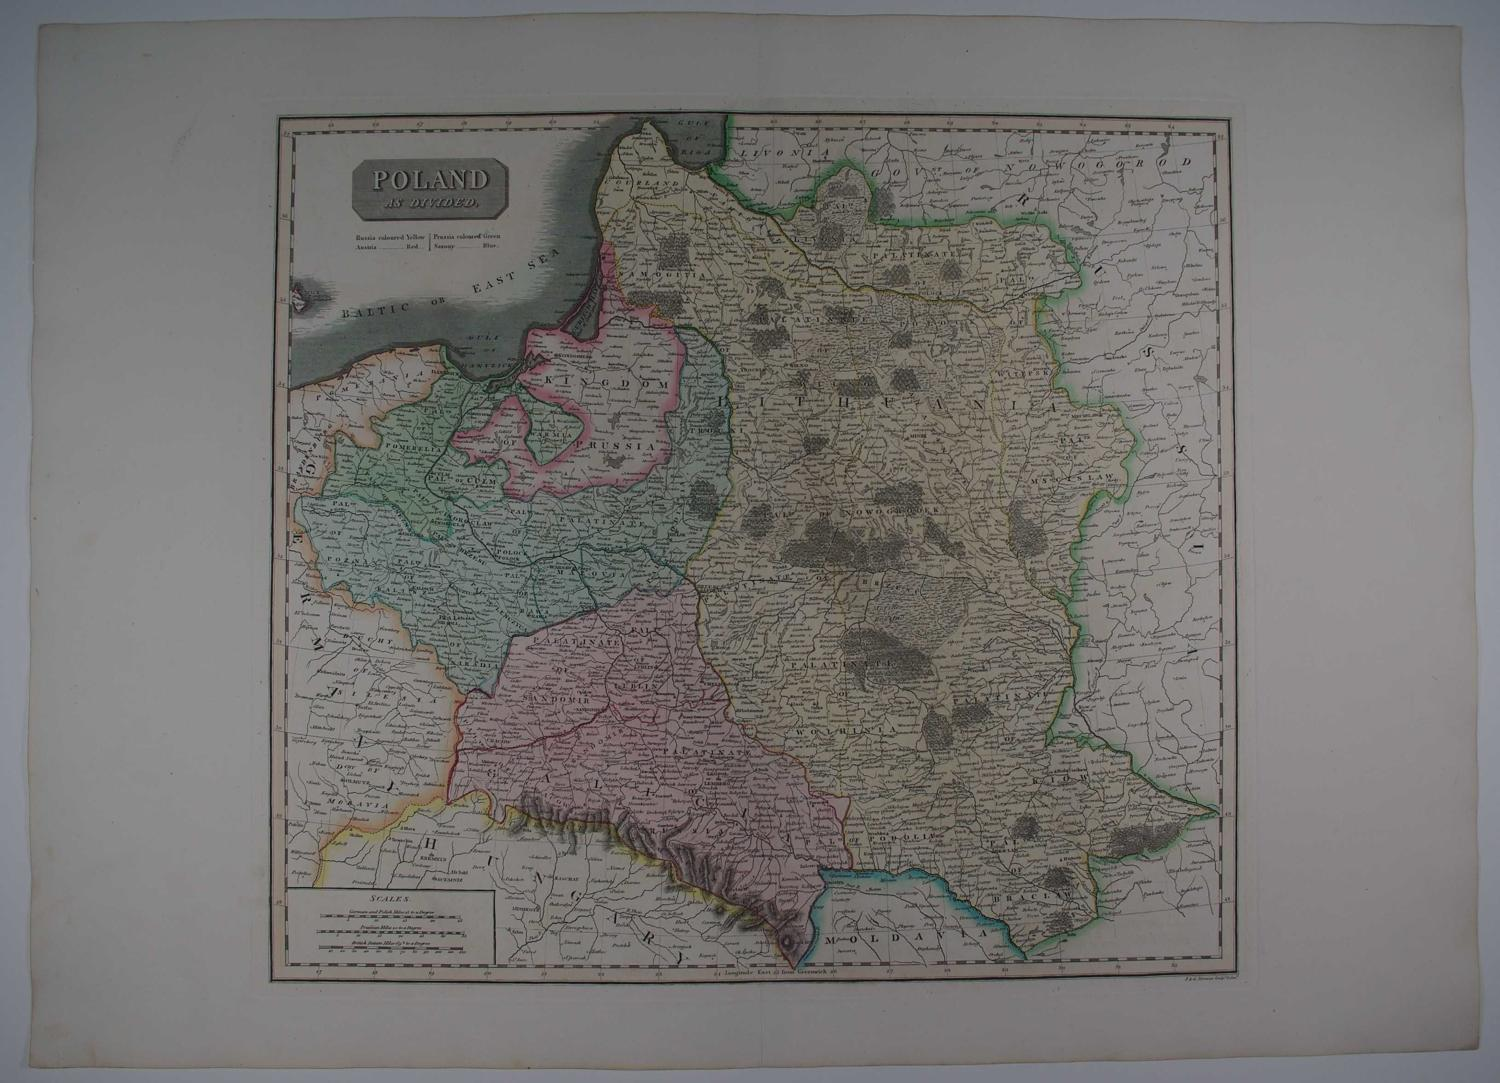 Poland as divided by John Thomson